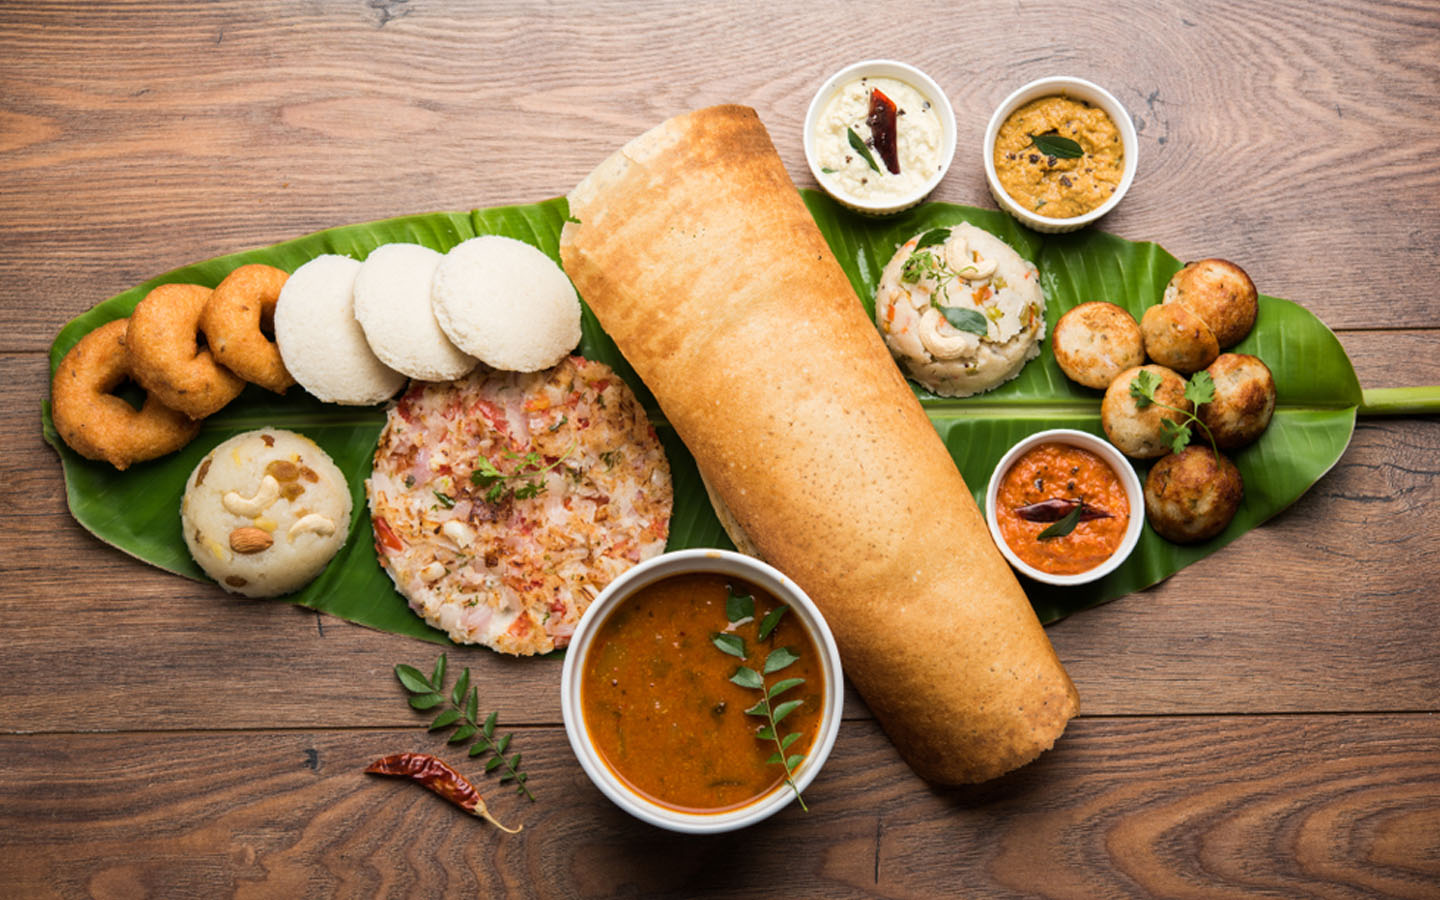 Dosa with curries and sambhar